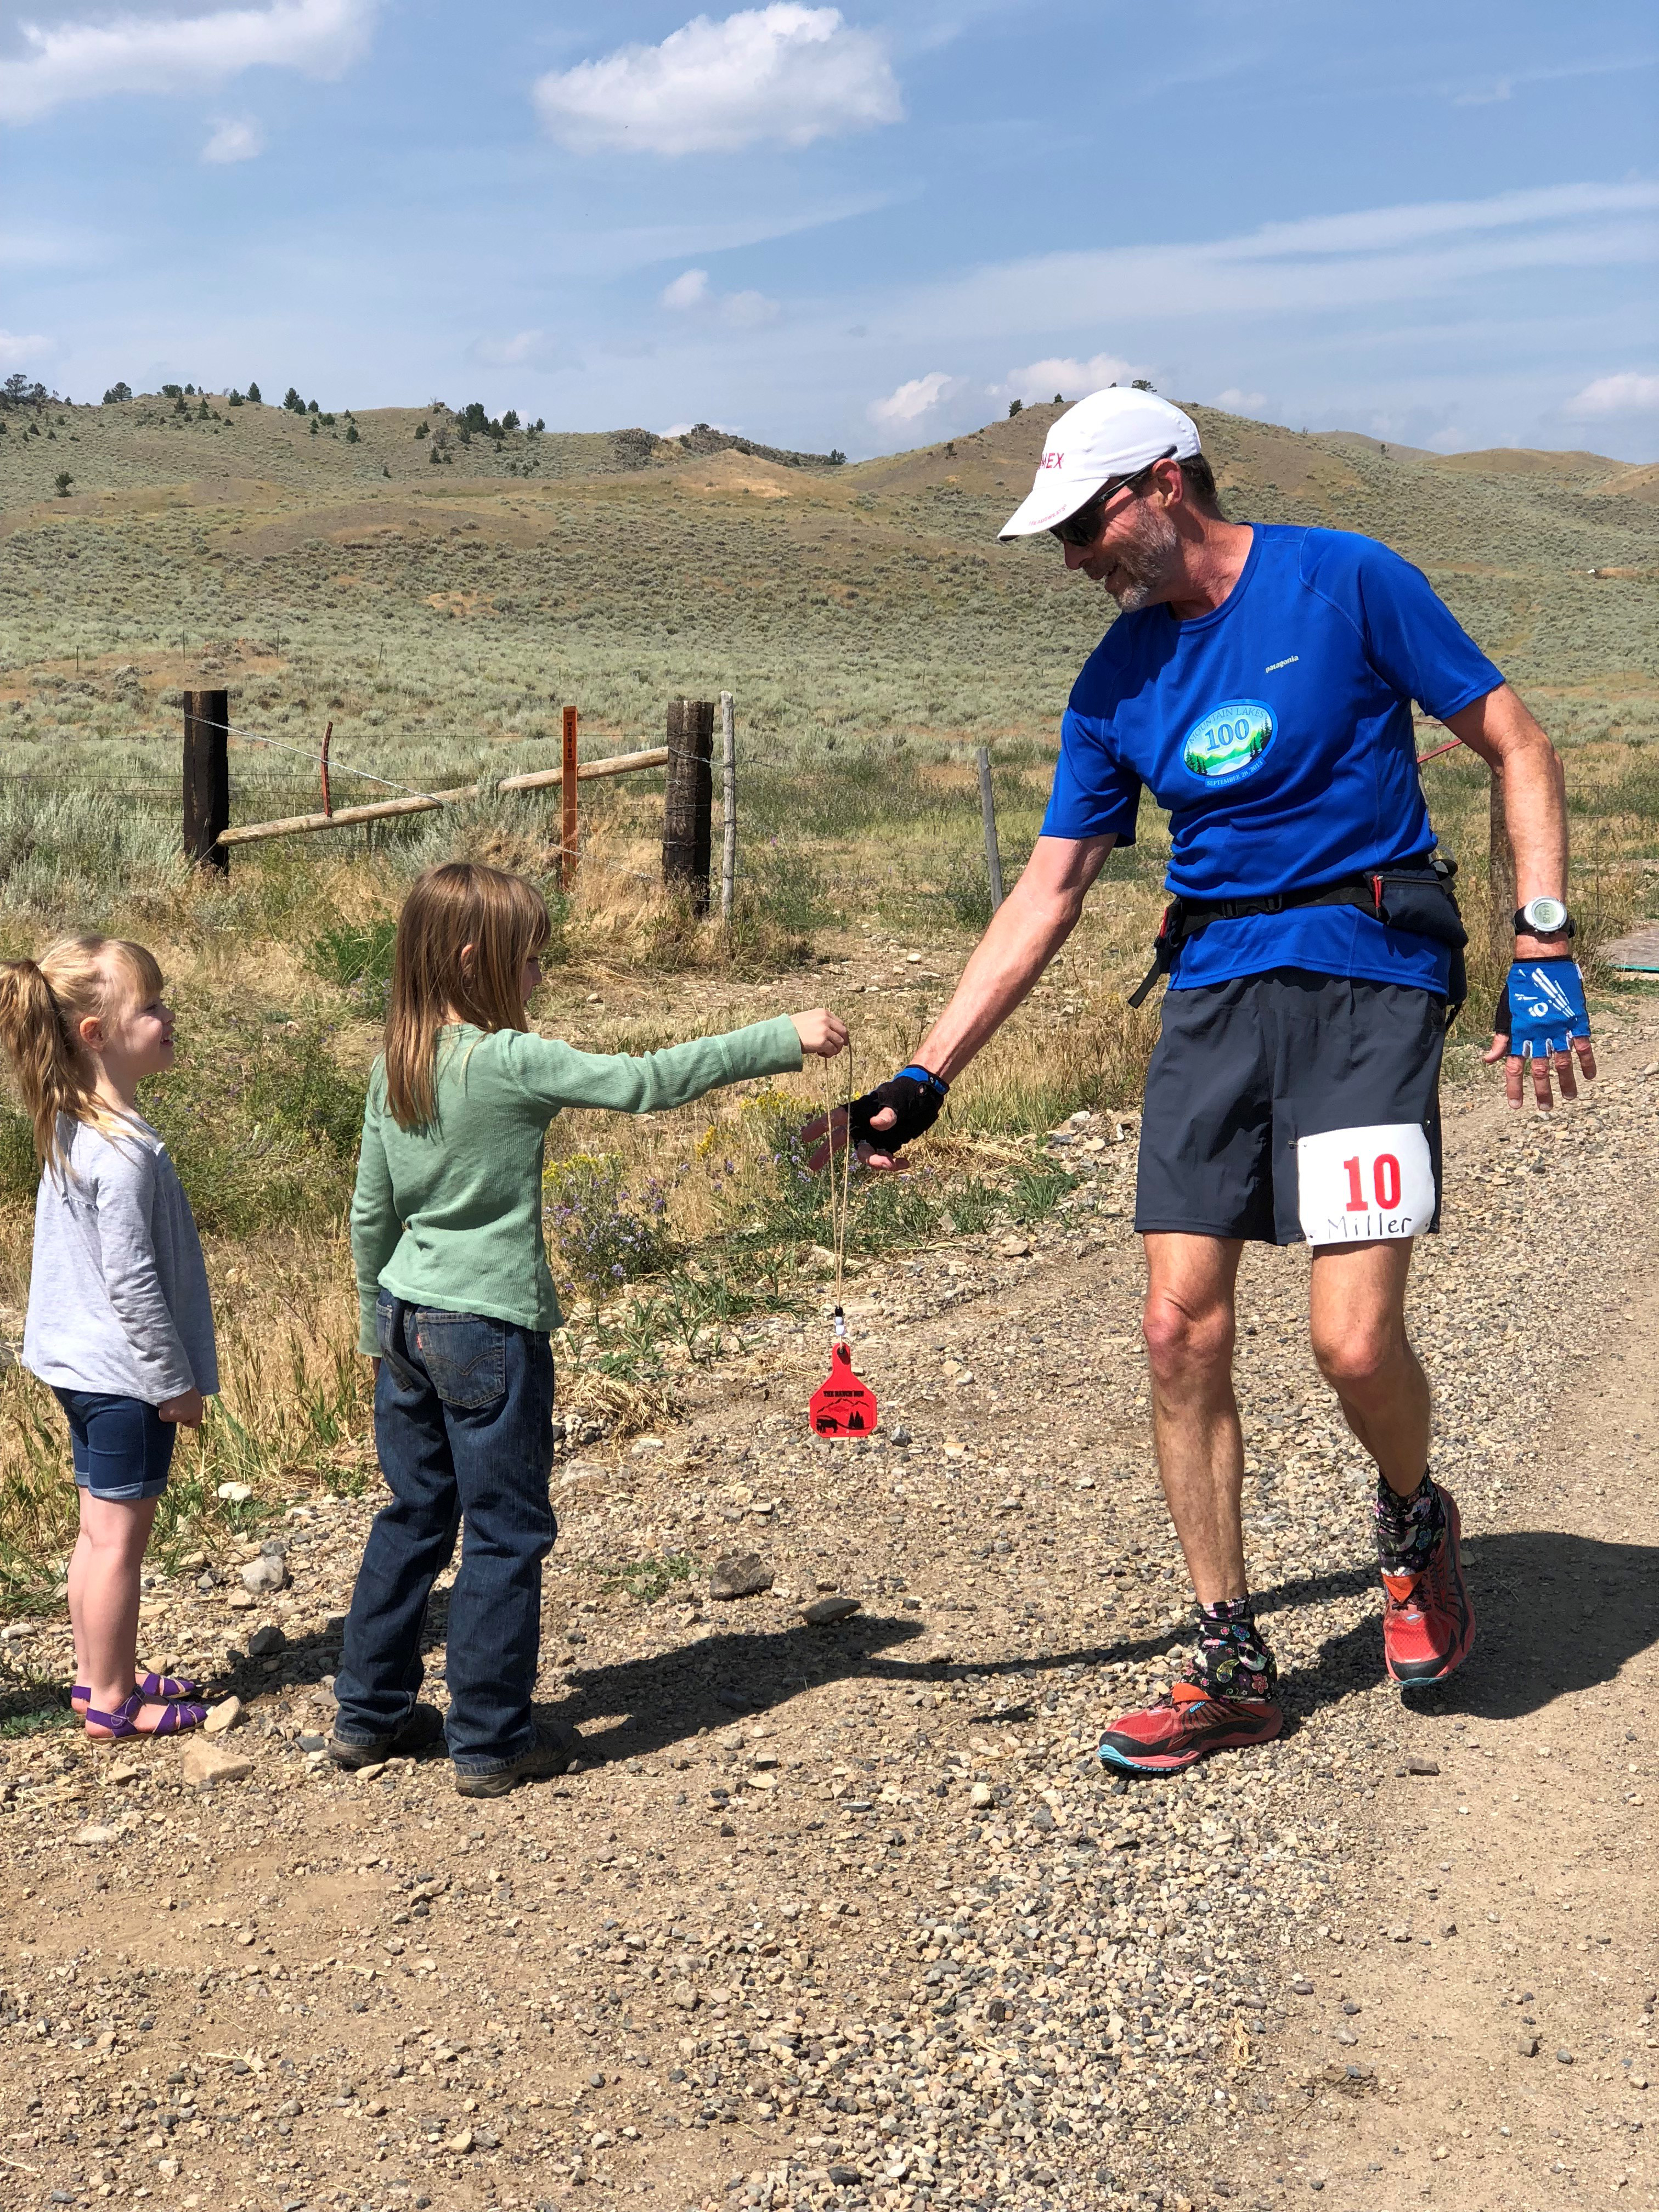 At the Montana Ranch Run, cattle ear tags were the finisher medals.